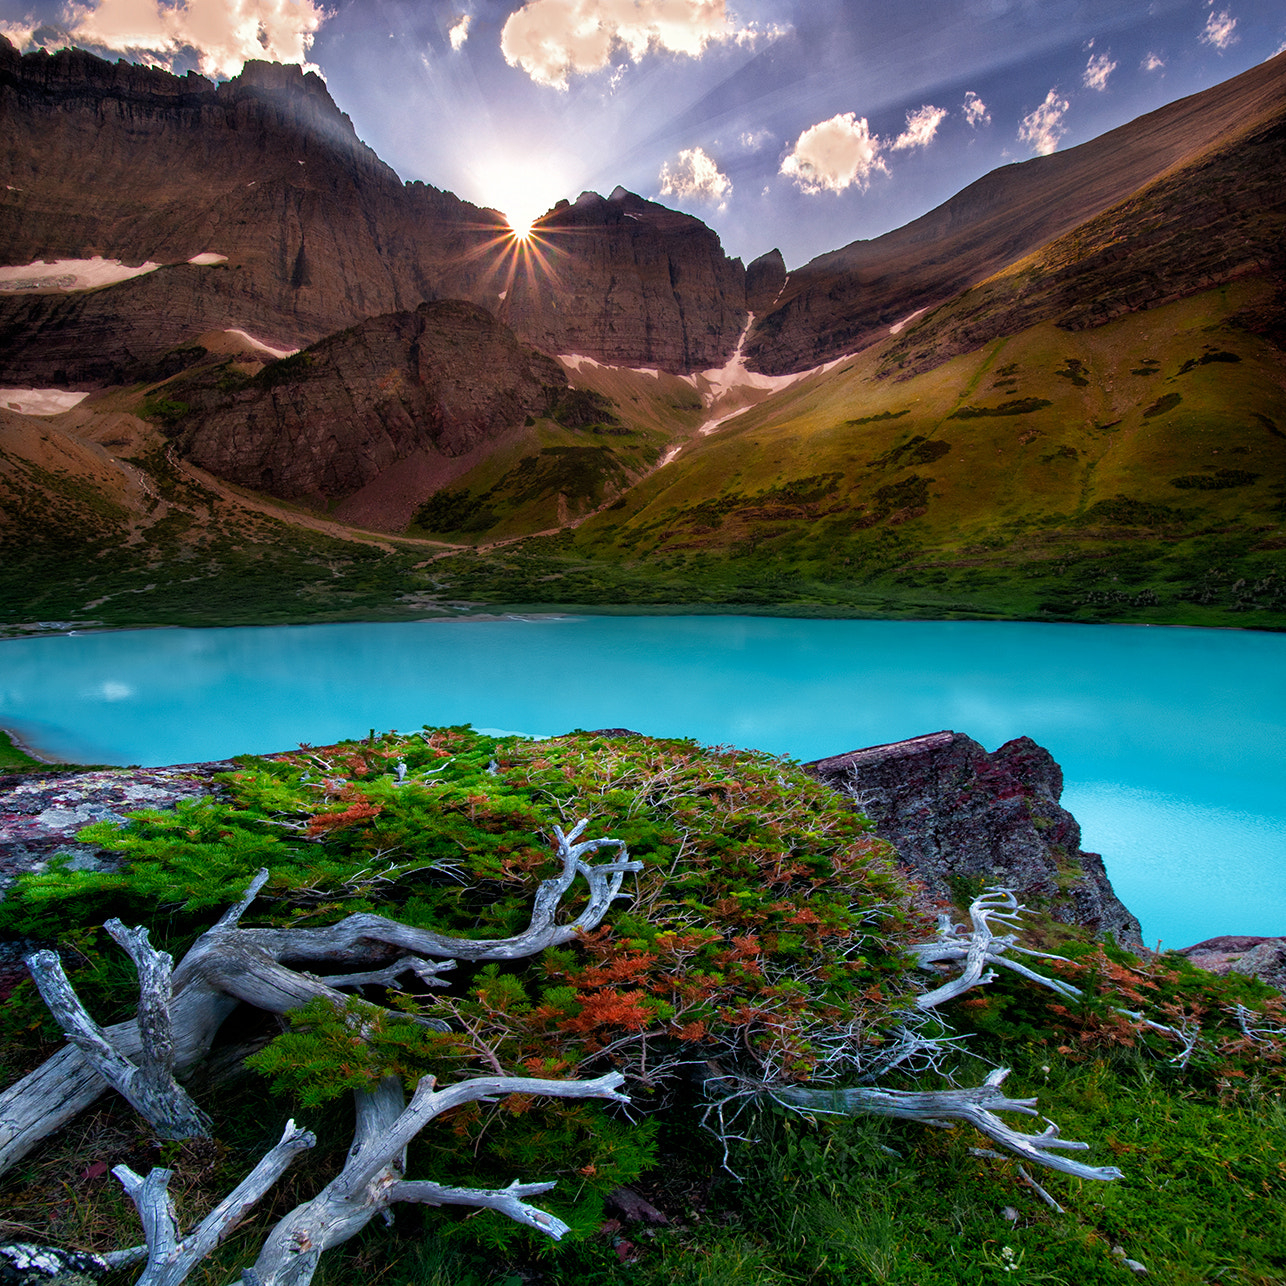 Photograph Turquois Dreams by Doug Solis on 500px